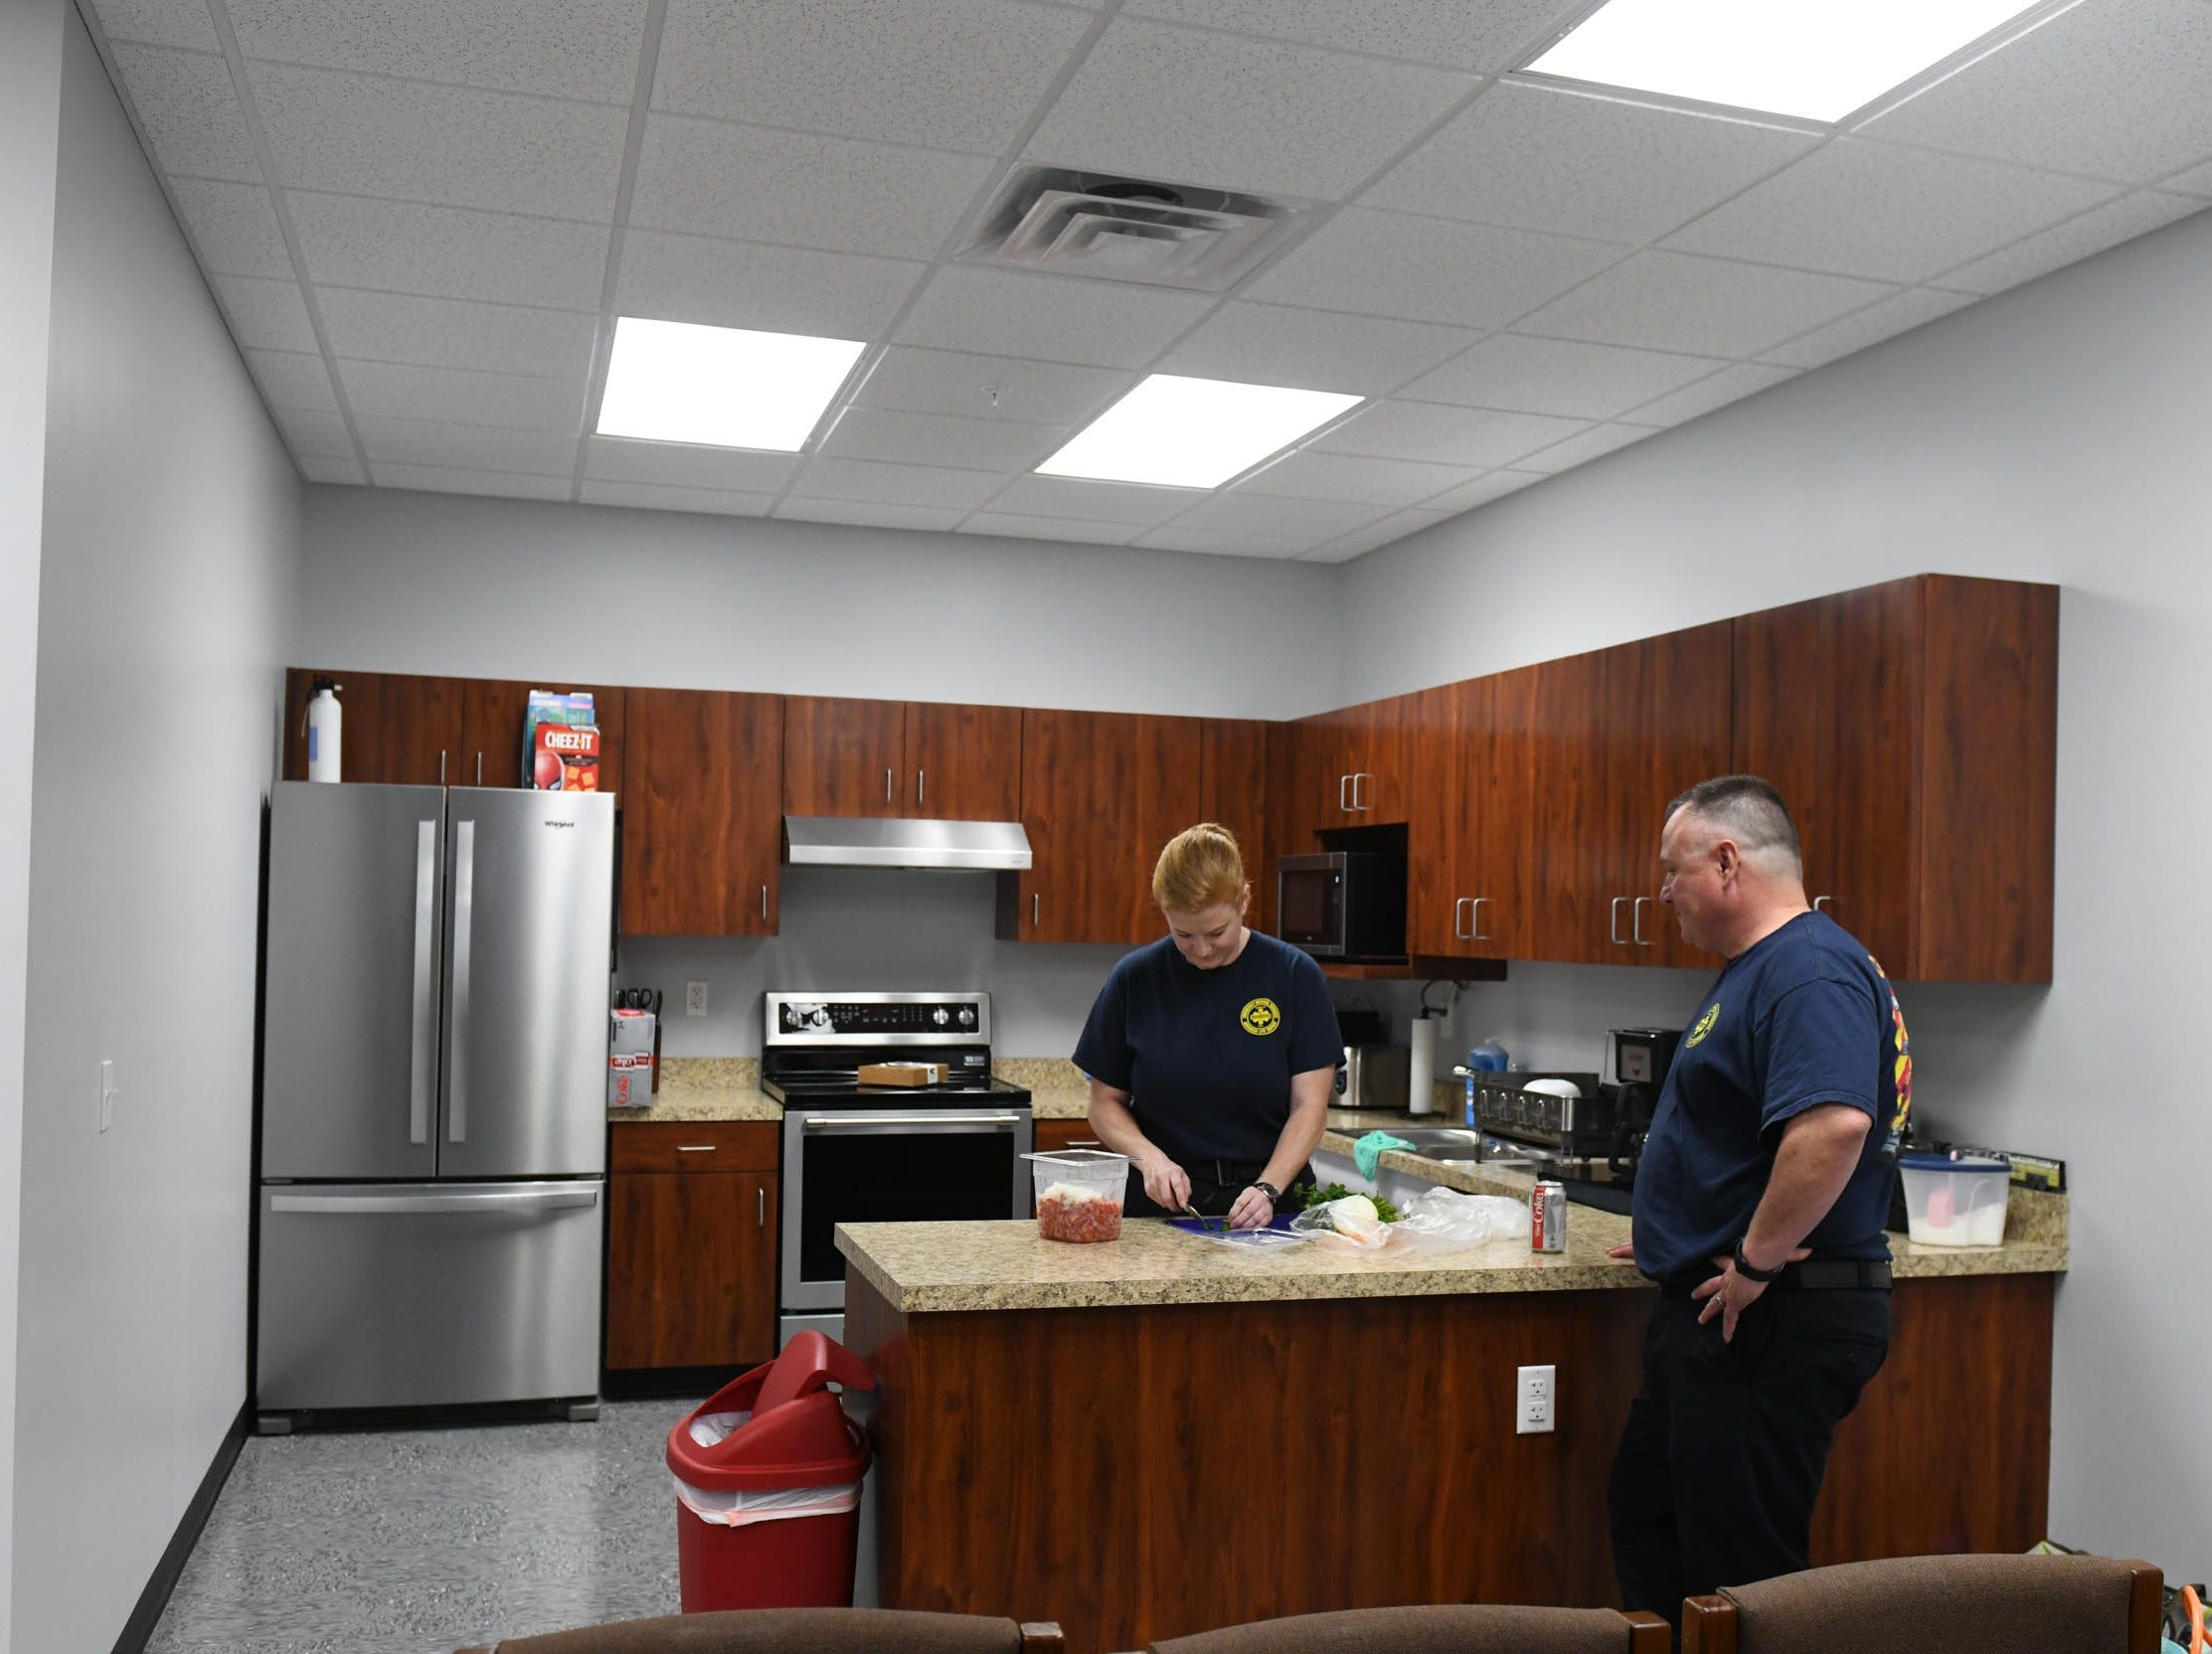 Chincoteague EMS personnel Alexis Witzke and Paul Savage prepare dinner for the first time in the new Chincoteague Volunteer Fire Department located at 5175 Chicken City Road on Wednesday, May 1, 2019